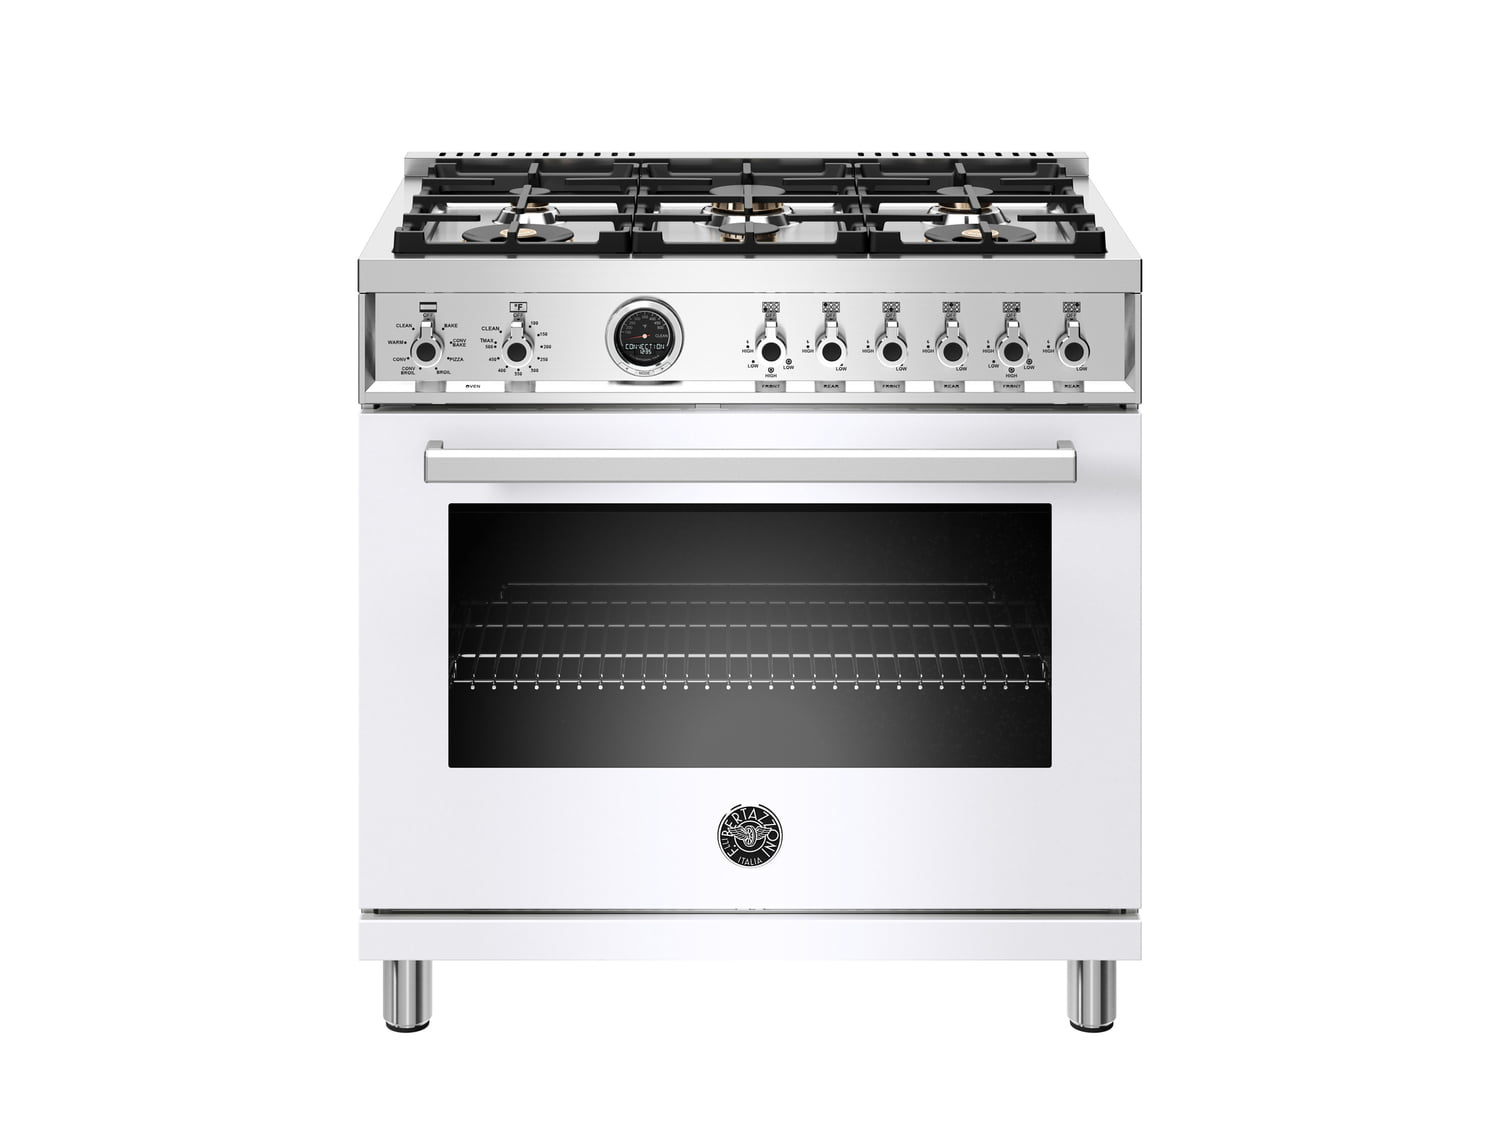 Load image into Gallery viewer, Bertazzoni PROF366DFSBIT 36 Inch Dual Fuel Range, 6 Brass Burner, Electric Self-Clean Oven Bianco